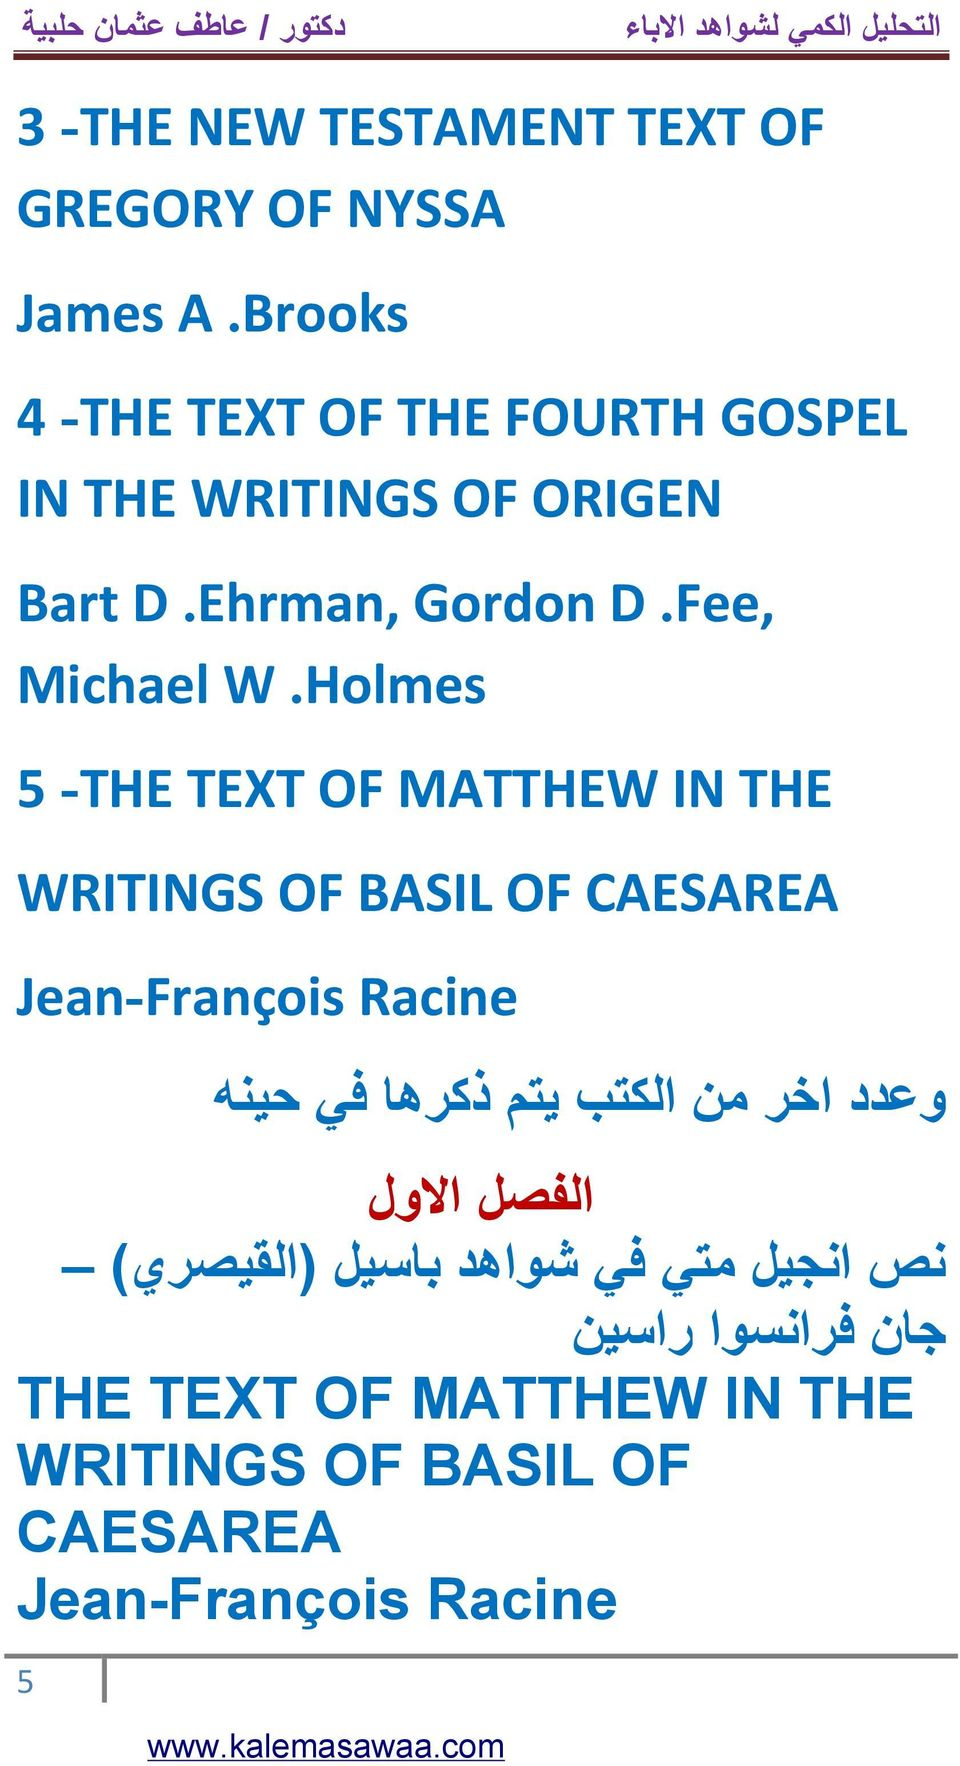 Holmes 5 -THE TEXT OF MATTHEW IN THE WRITINGS OF BASIL OF CAESAREA Jean-François Racine 5 وعدد اخر من الكتب